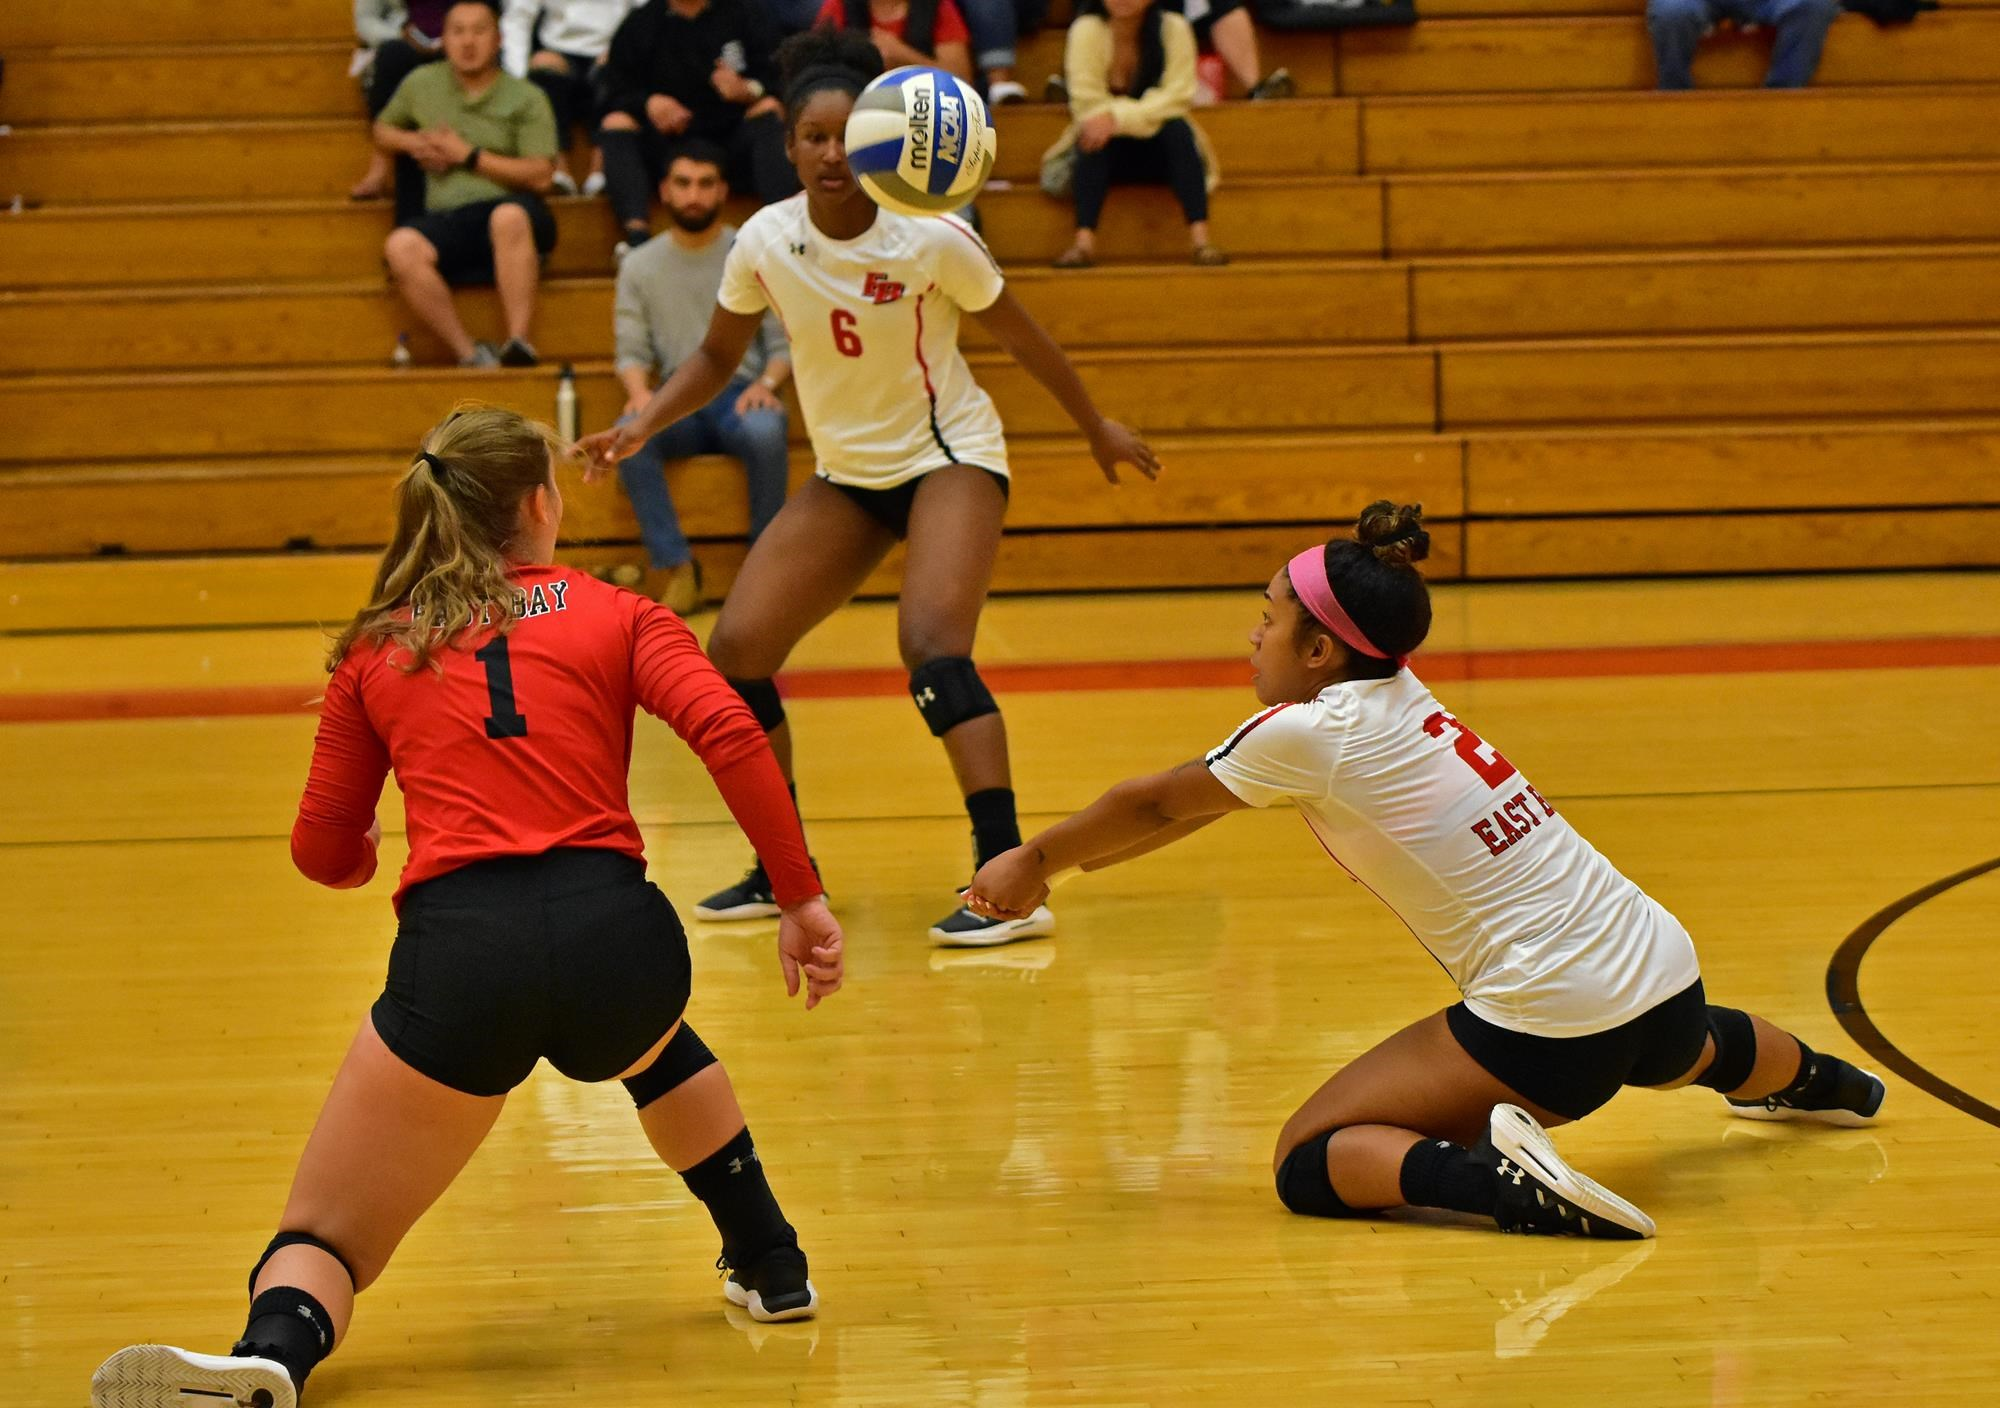 Deja Thompson - Womens Volleyball - Cal State East Bay